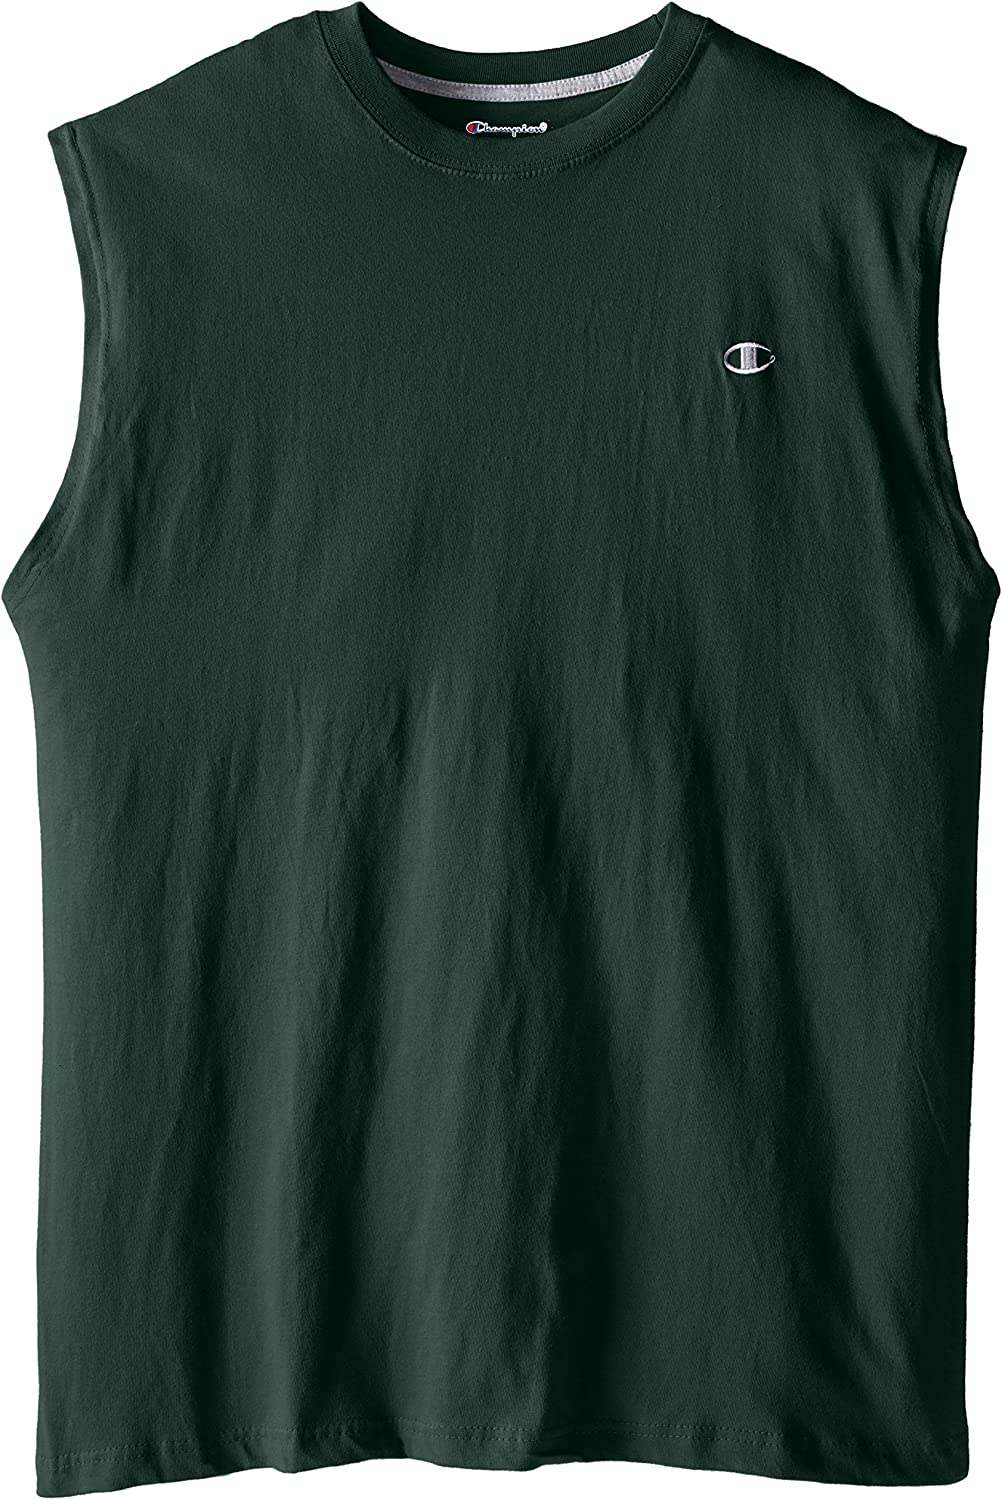 Champion Mens Big-Tall Jersey Muscle T-Shirt